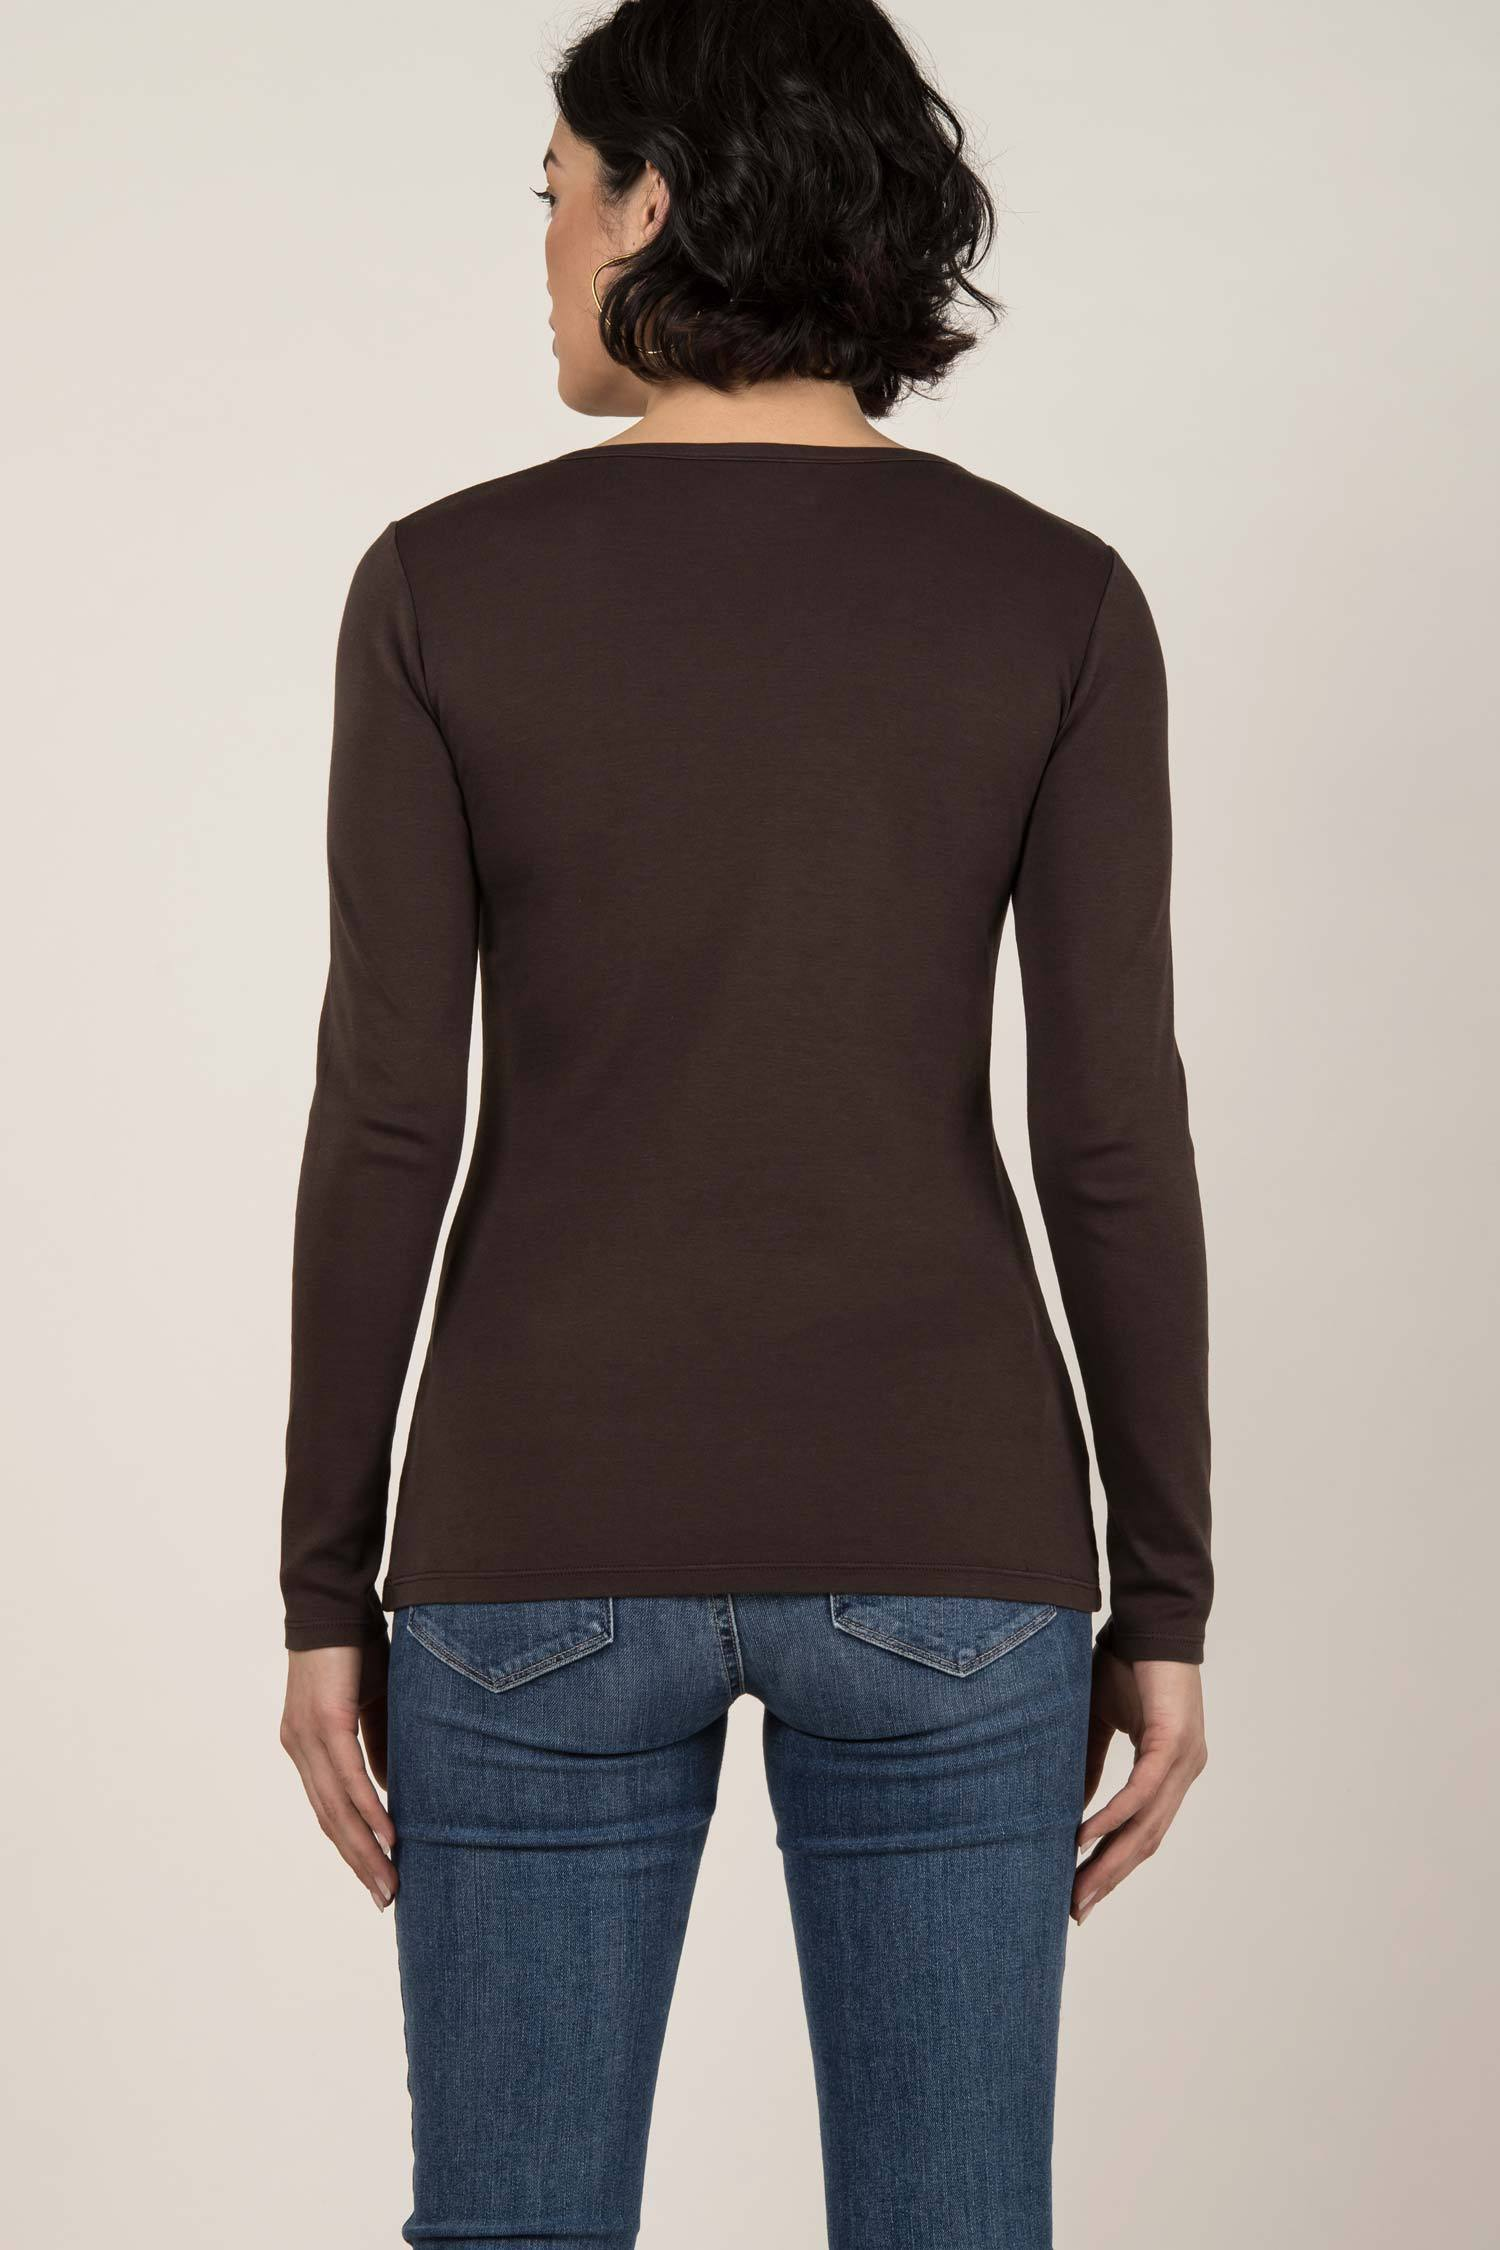 Womens Organic Cotton Top | Essential Long Sleeve Scoop Tee | Mink